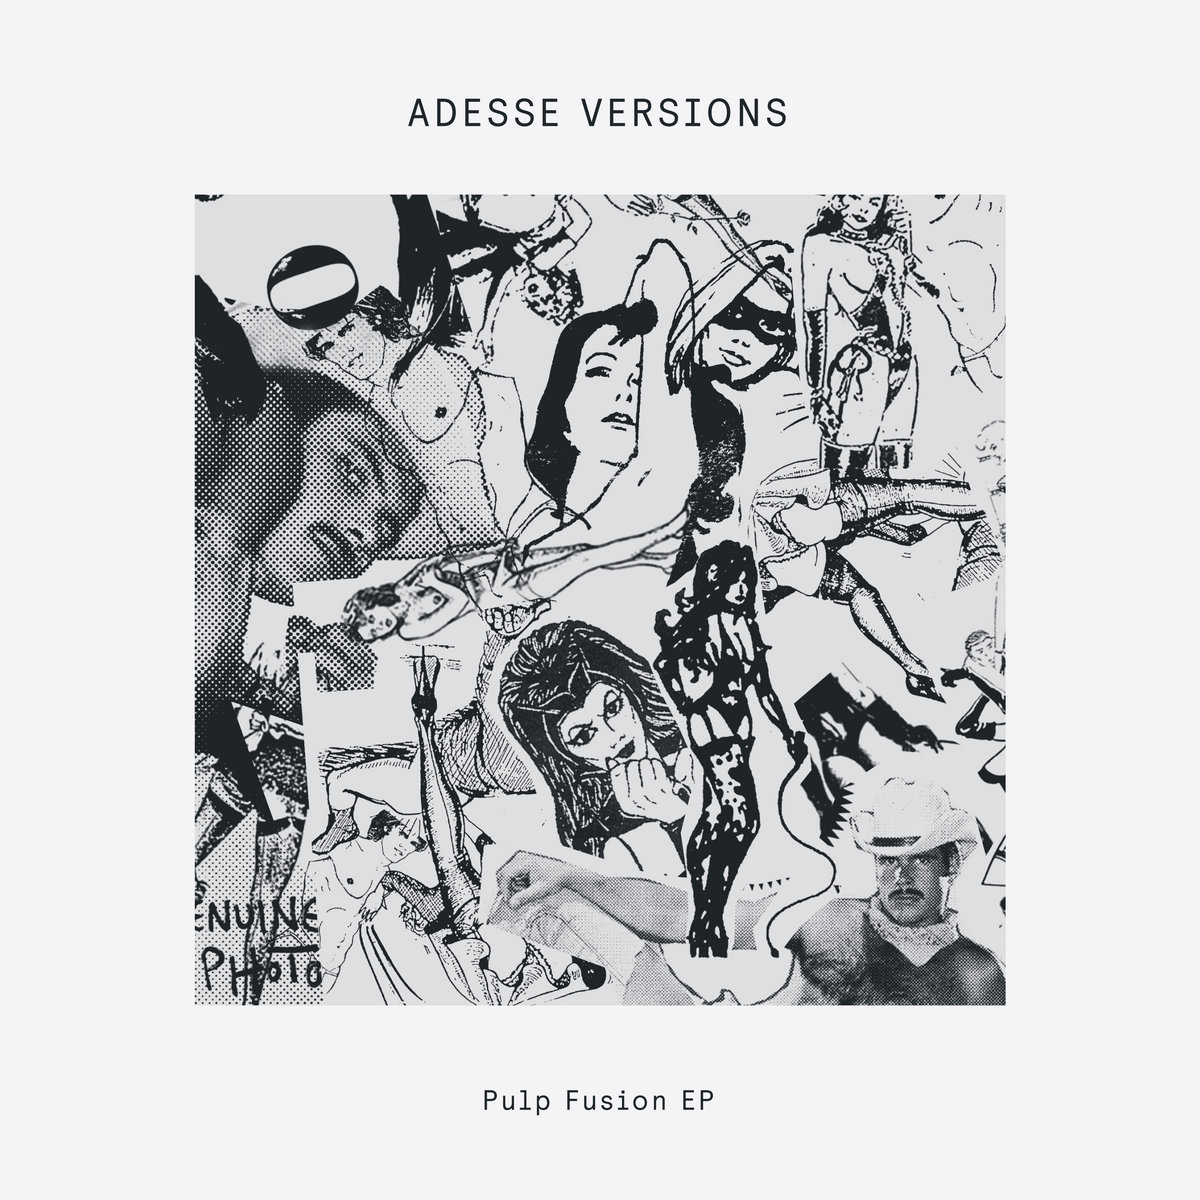 From Pulp Fusion Ep By Adesse Versions